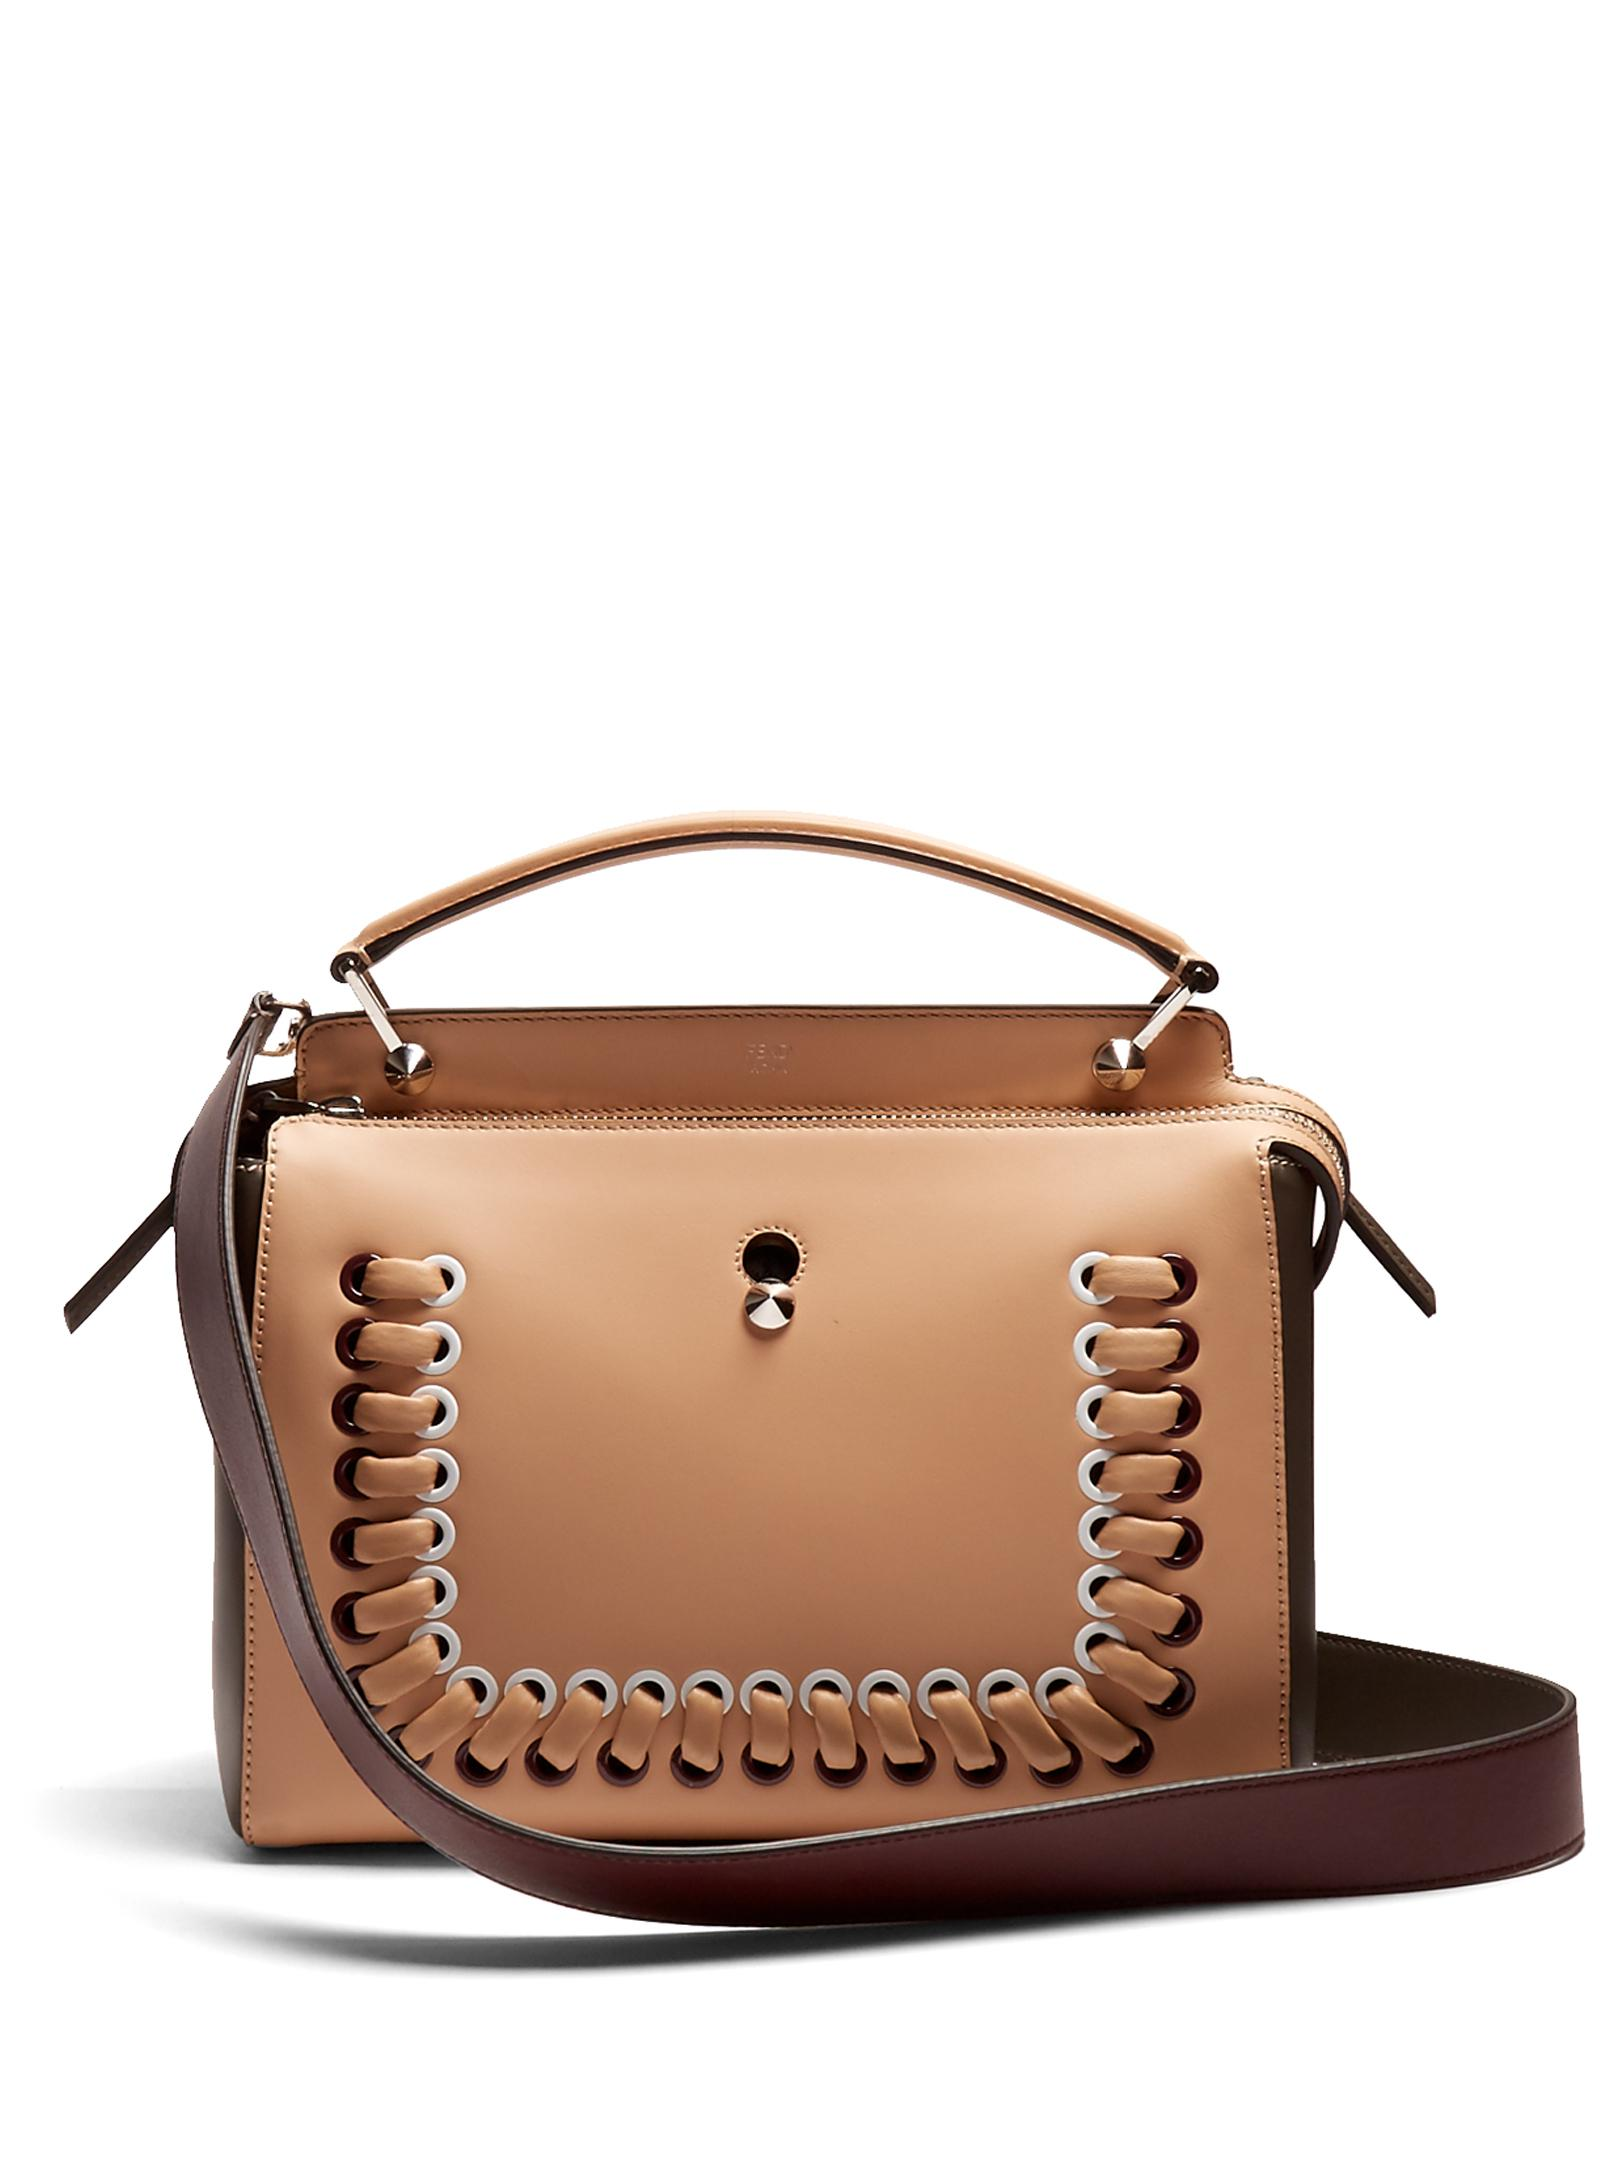 abf692bf2f09 Lyst - Fendi Dotcom Bi-colour Whipstitch Leather Bag